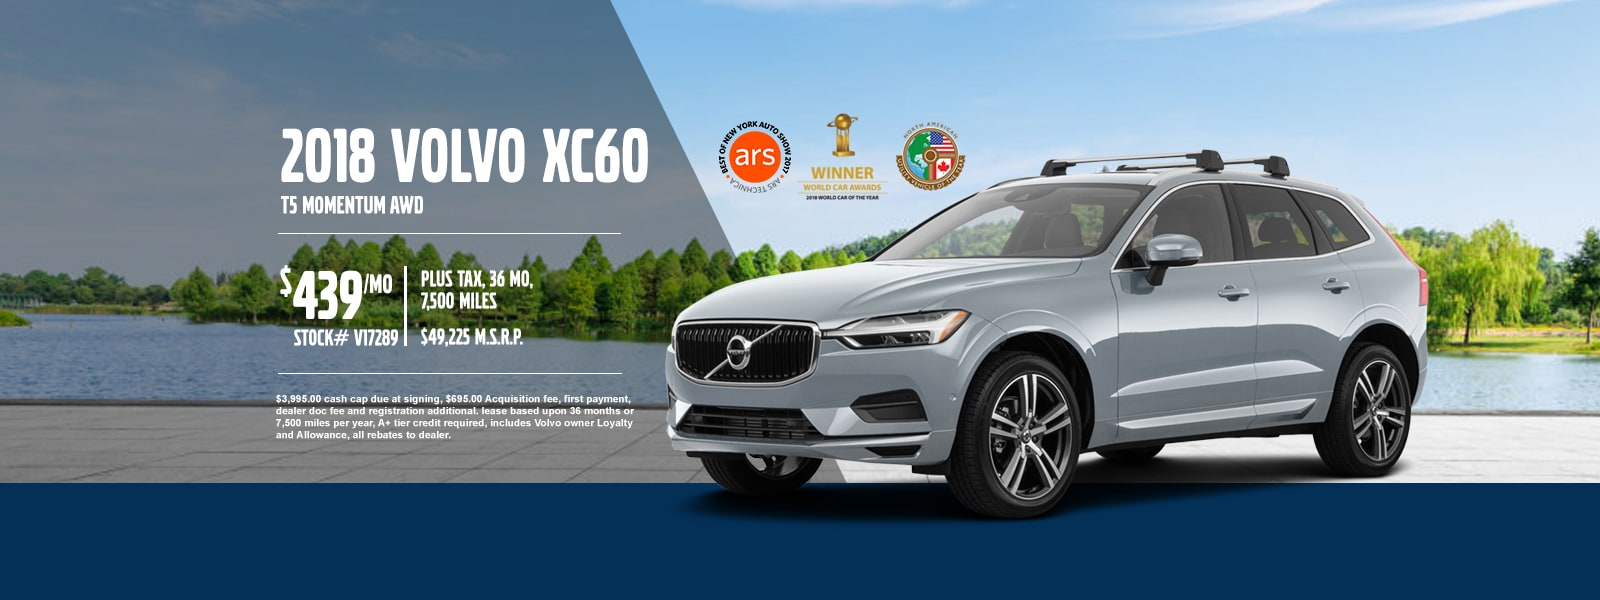 specials at cars new volvo for village is per mile car lease year all excess ma d danvers wear deals miles leases over responsible mileage are dealership lessee and